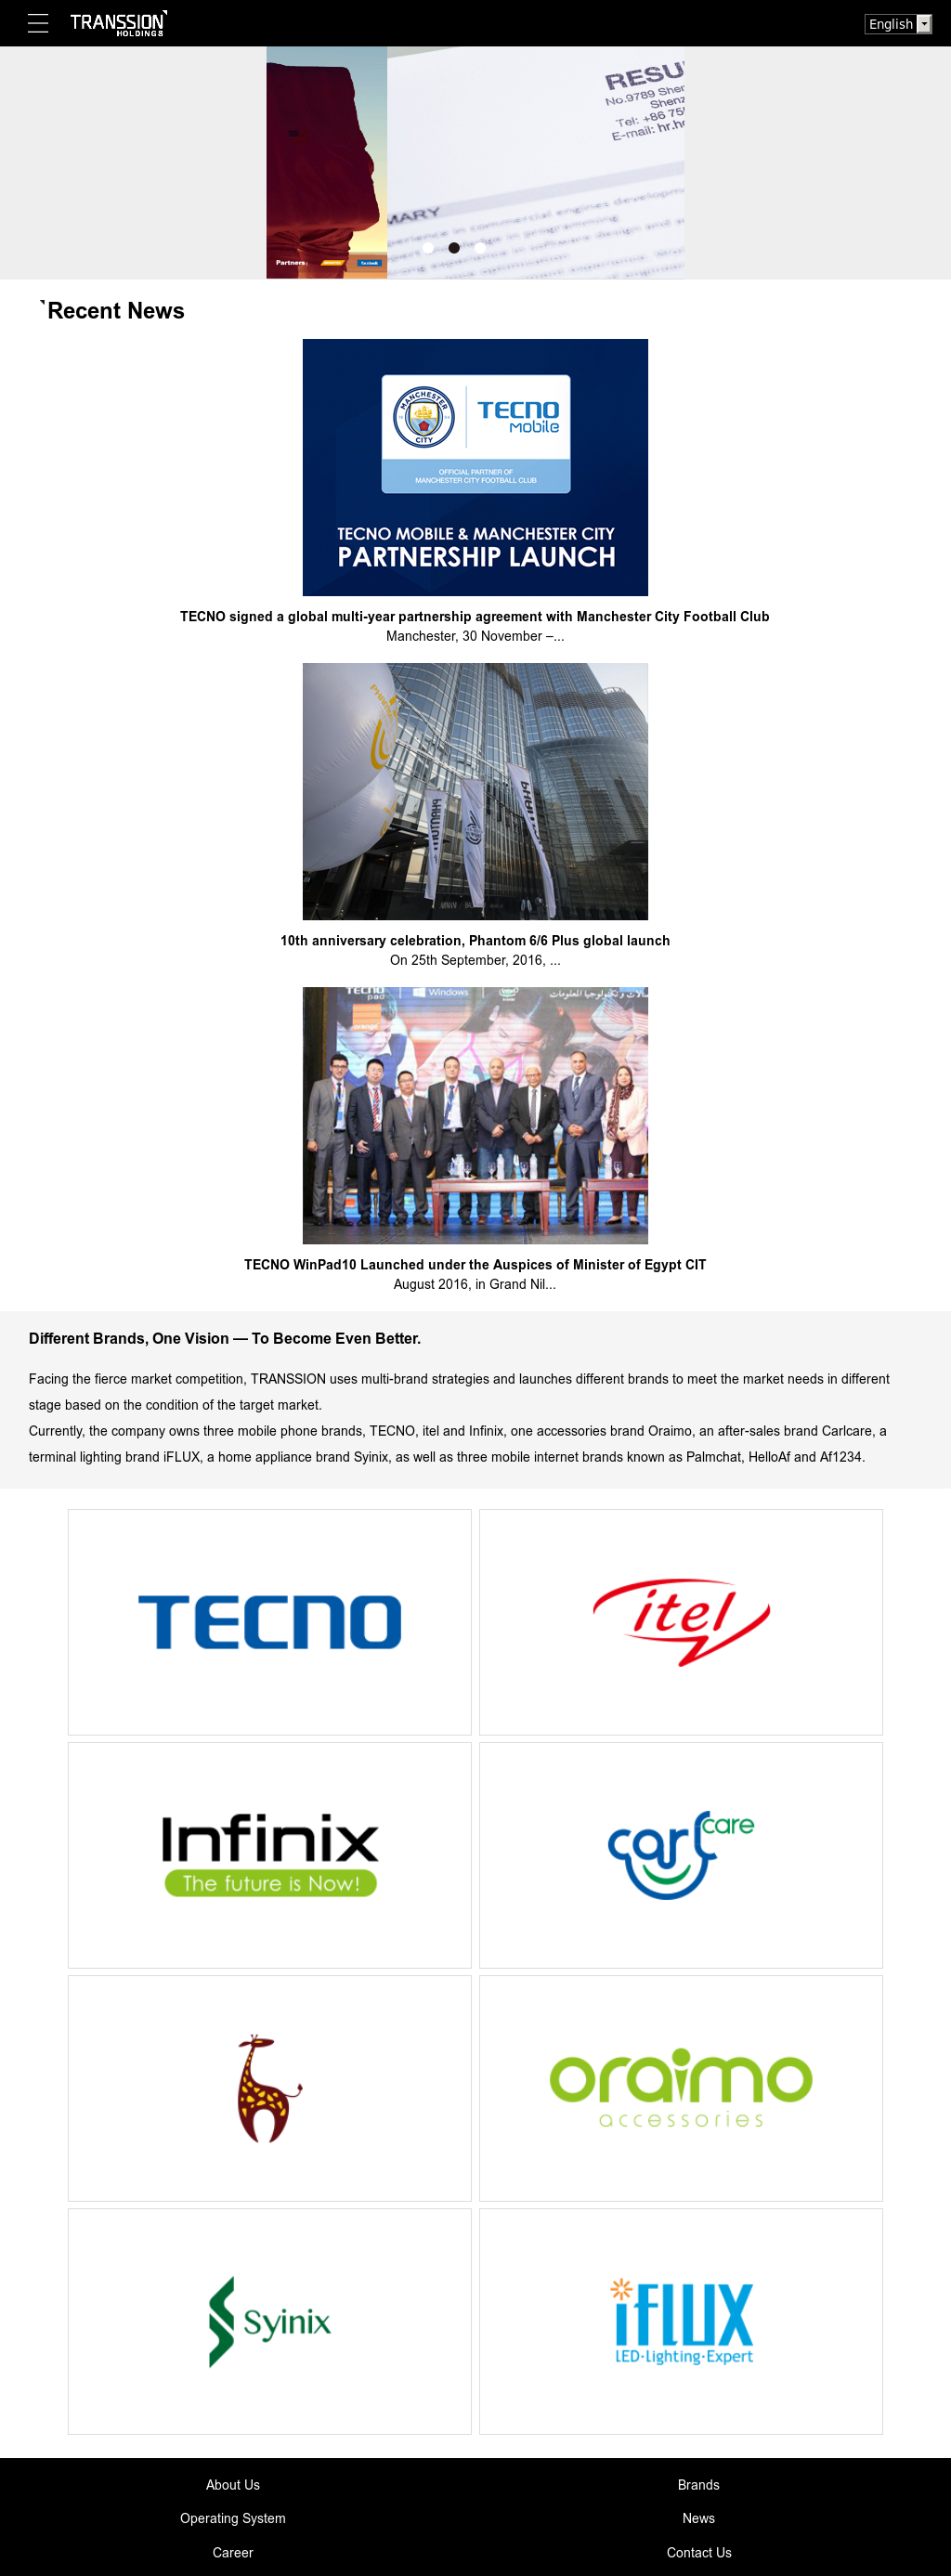 Transsion Competitors, Revenue and Employees - Owler Company Profile